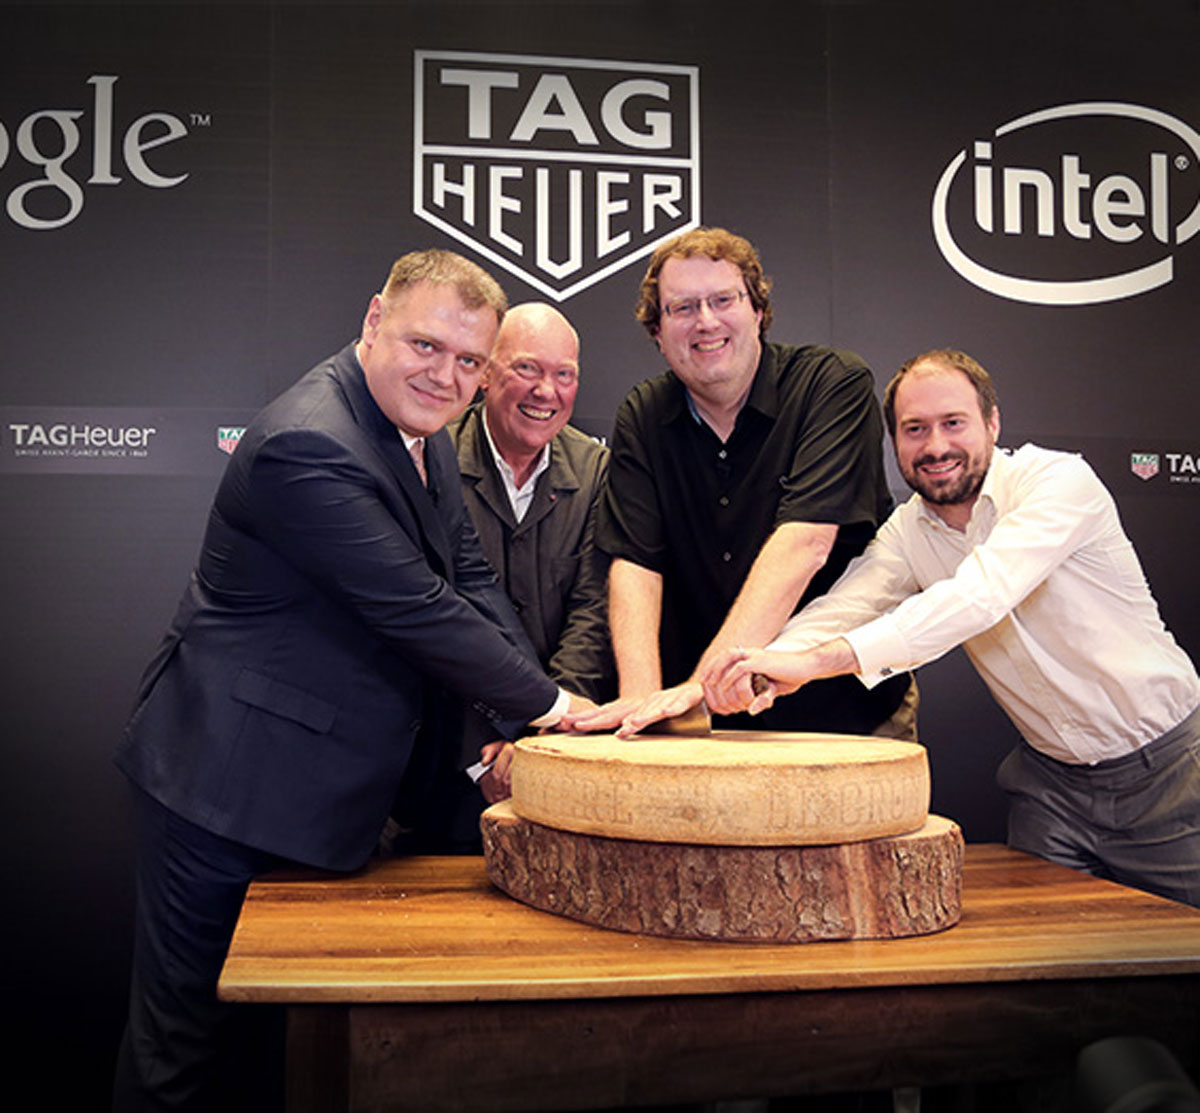 tag-heuer-intel-google-smartwatch